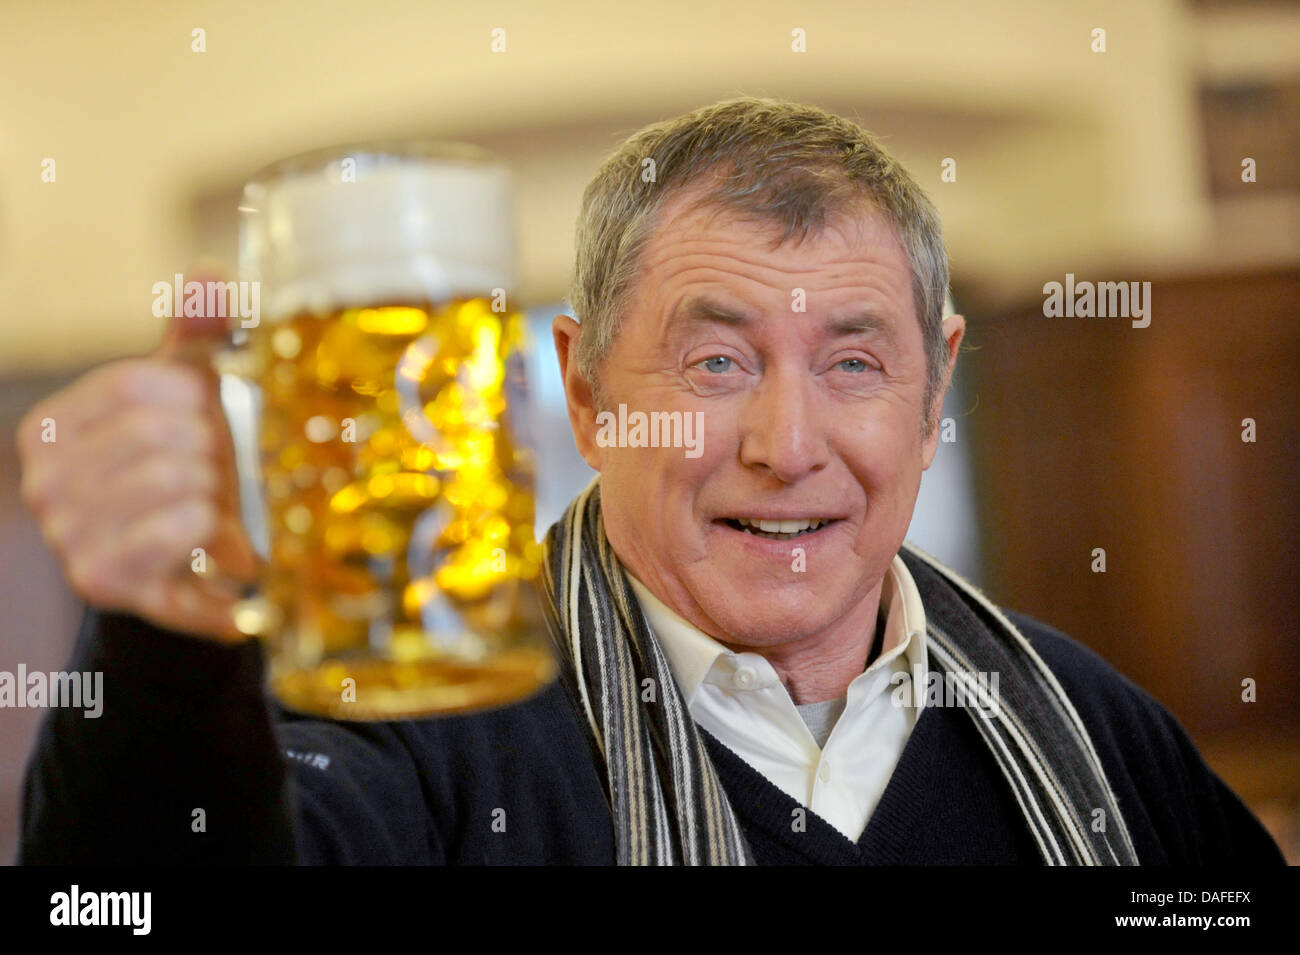 British actor John Nettles poses with a beer during a ... John Nettles 2017